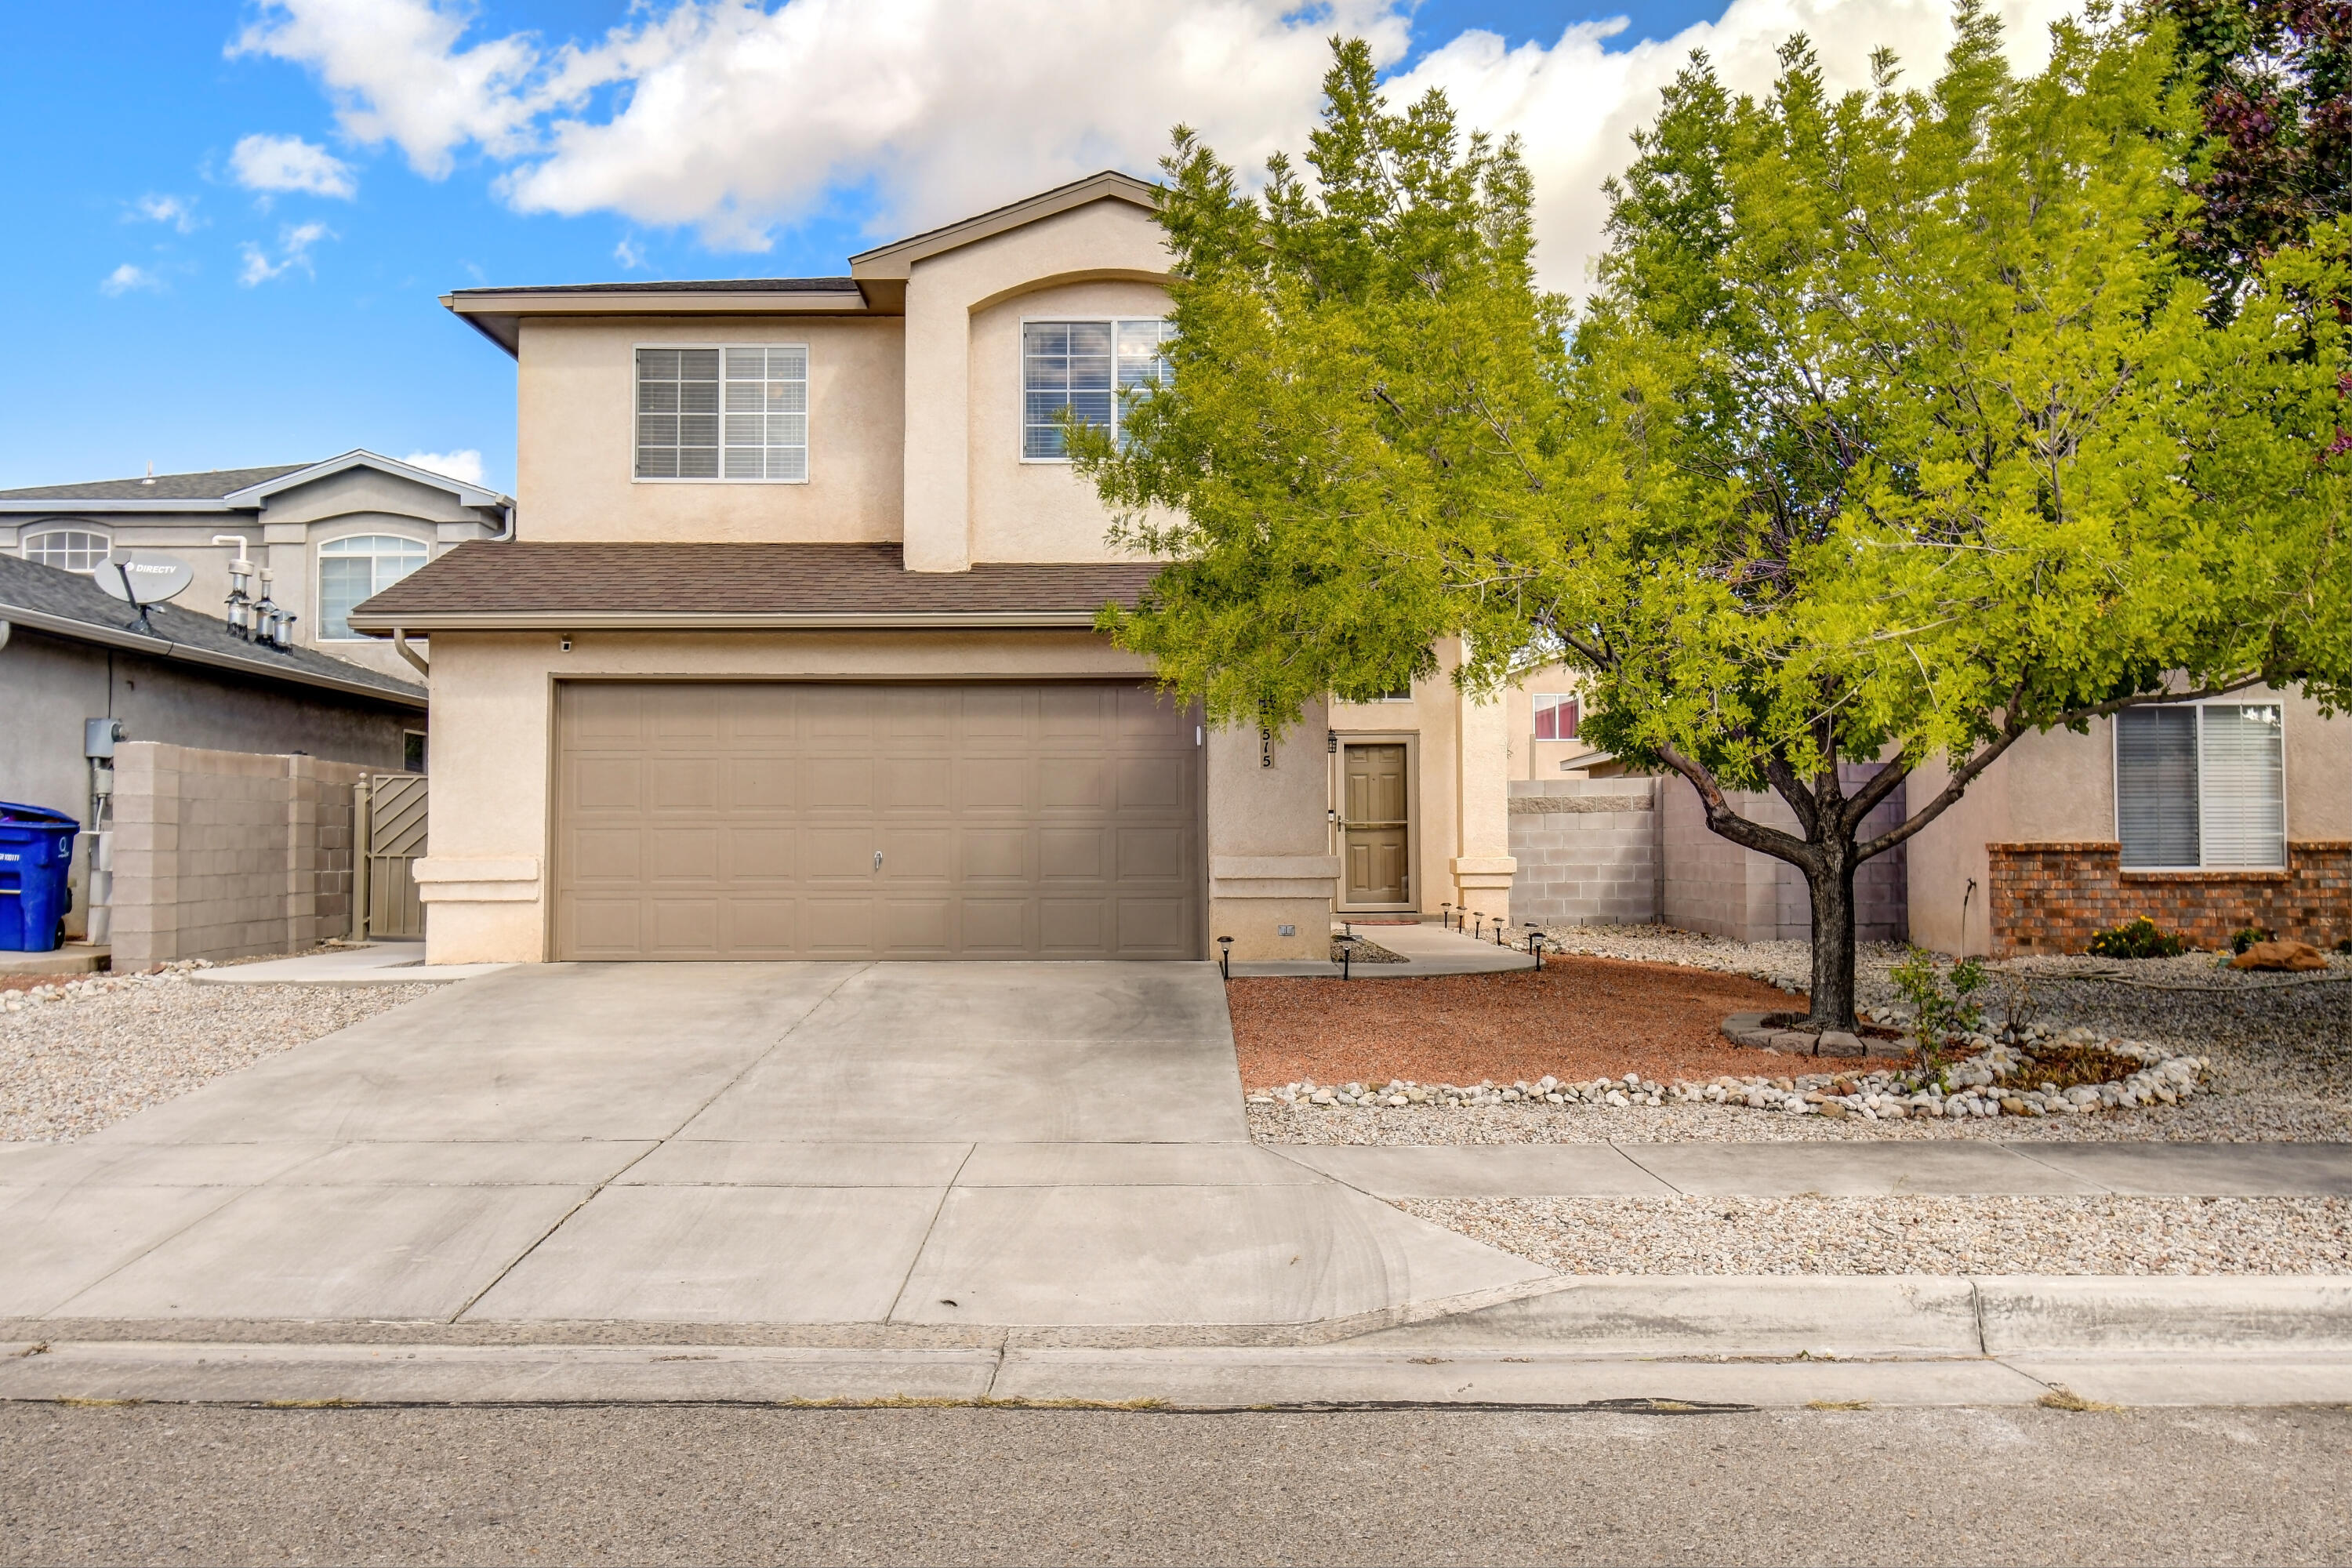 Stunning one-owner beauty!  This move-in ready home is a dream.  Updates include: newer ceramic title, refrigerator, water heater, furnace (2020), Roof (2019), custom gutters, storm door and custom wrought iron gate, granite counter tops (2021). Conveniently located to many amenities such as shopping, schools, restaurants and entertainment while still being nicely tucked away you can have it all.  Back yard features extended patio, 6 foot wall.  Oversized garage with built in shelves.